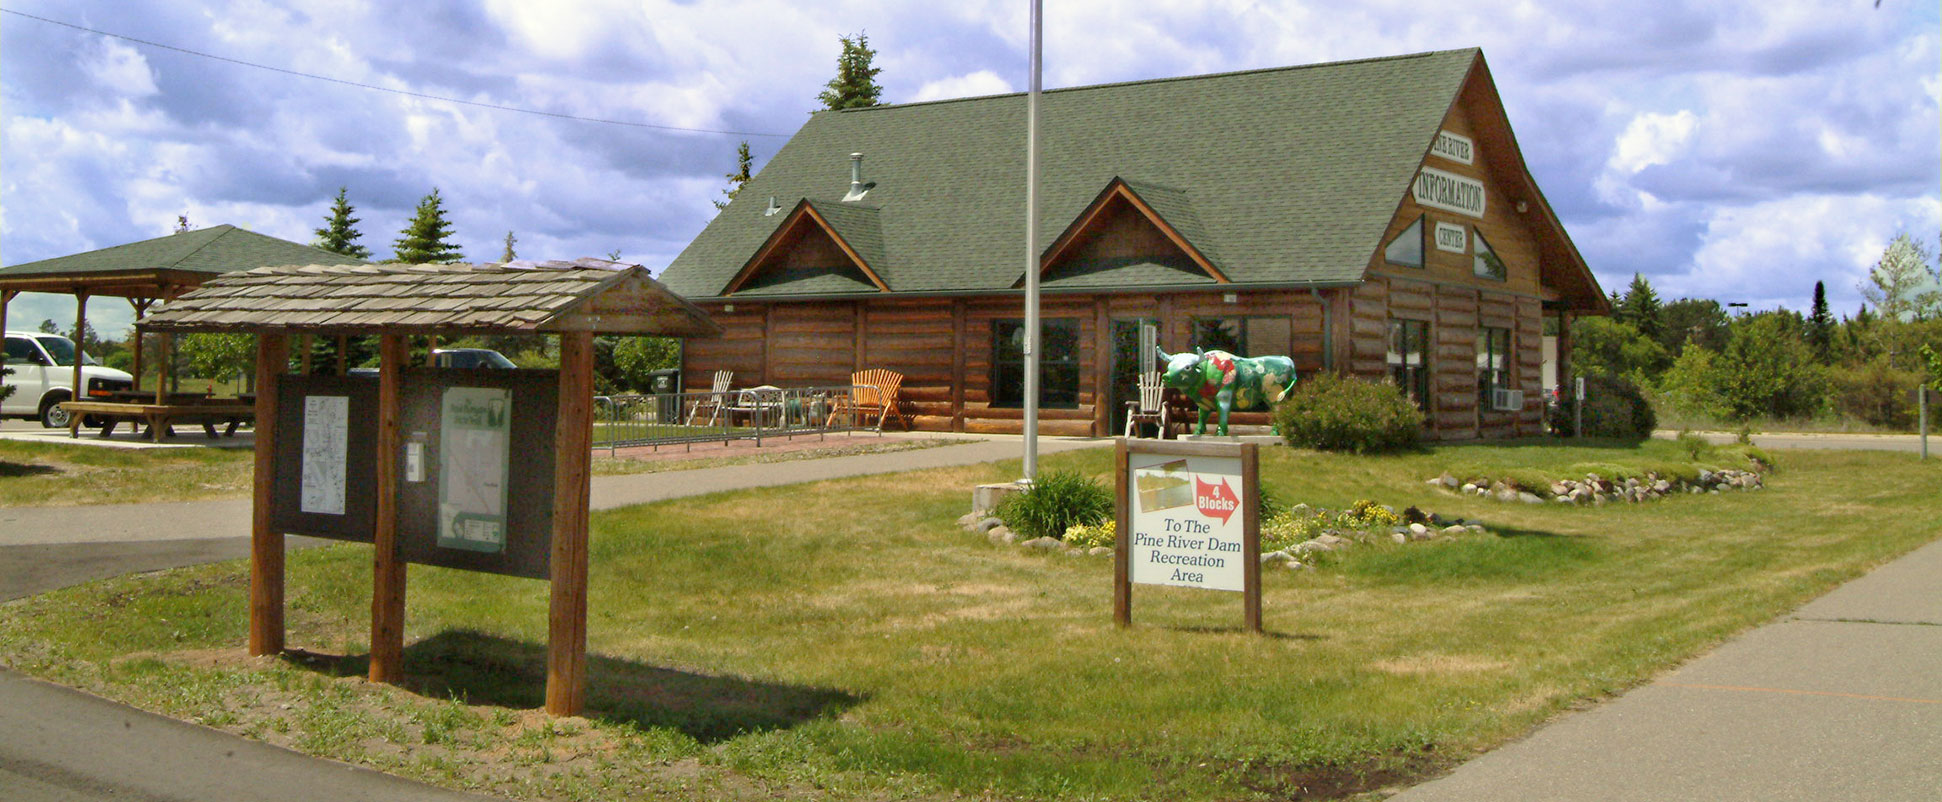 The Pine River Chamber of Commerce | Pine River MN